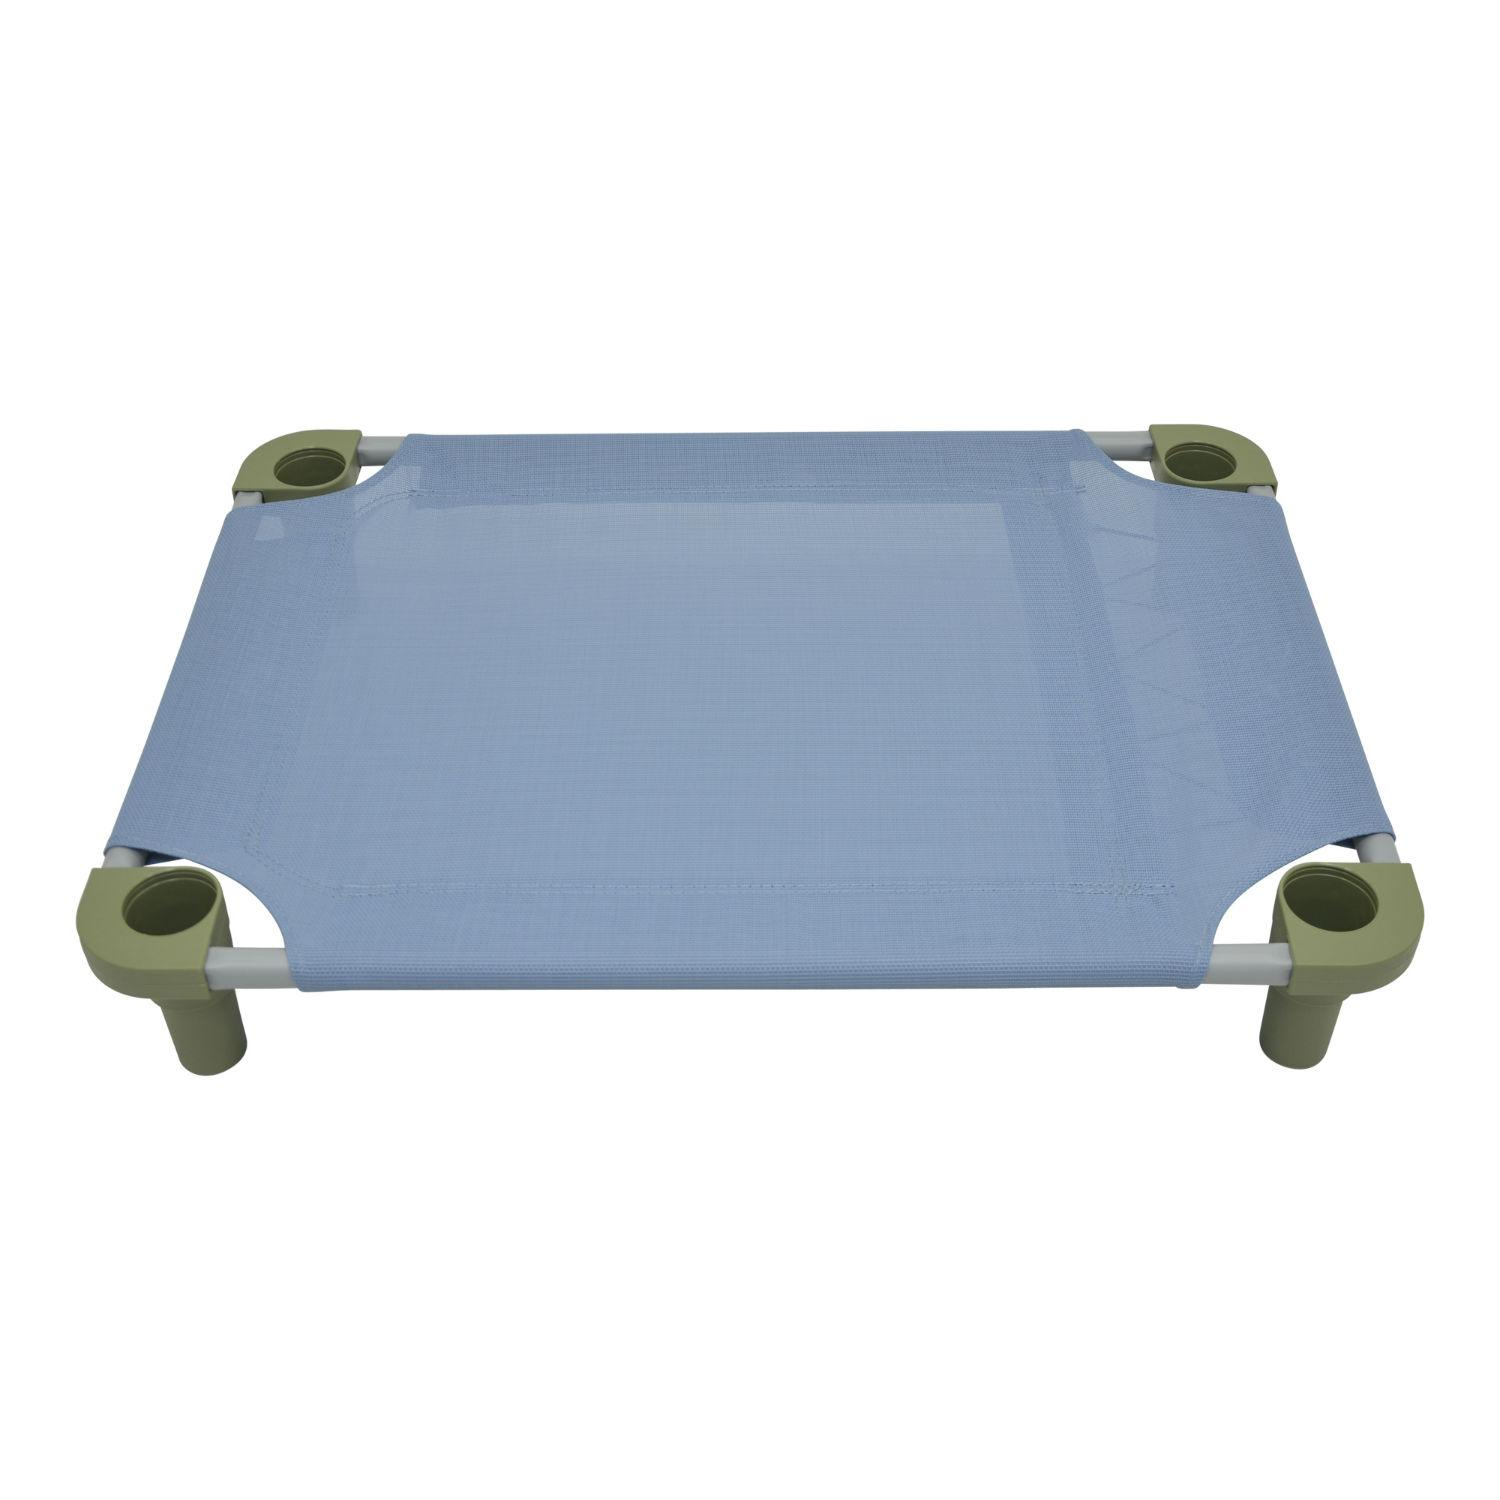 Solid Color Premium Weave Dog Cot - Sistine Blue with Sage Legs